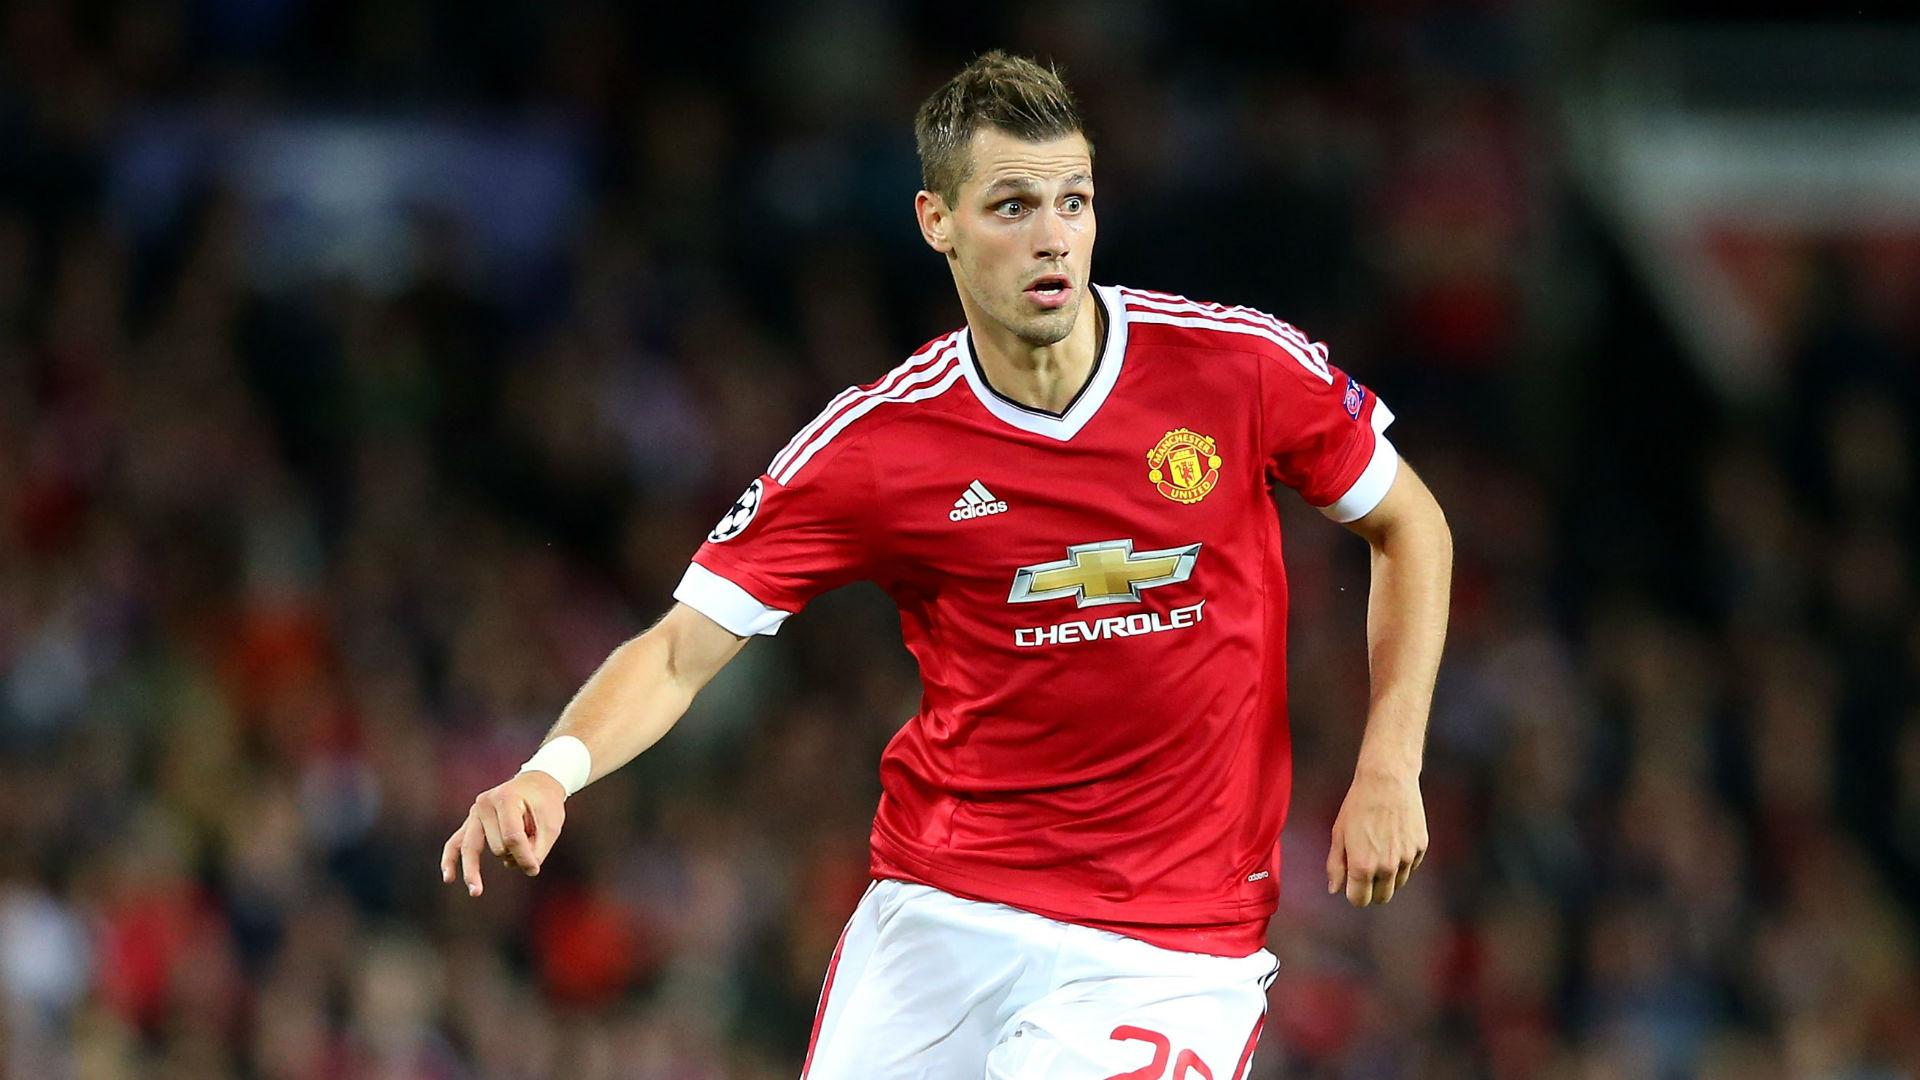 'He told us when we could eat' - Schneiderlin blames 'strict' Van Gaal for failed Man Utd spell